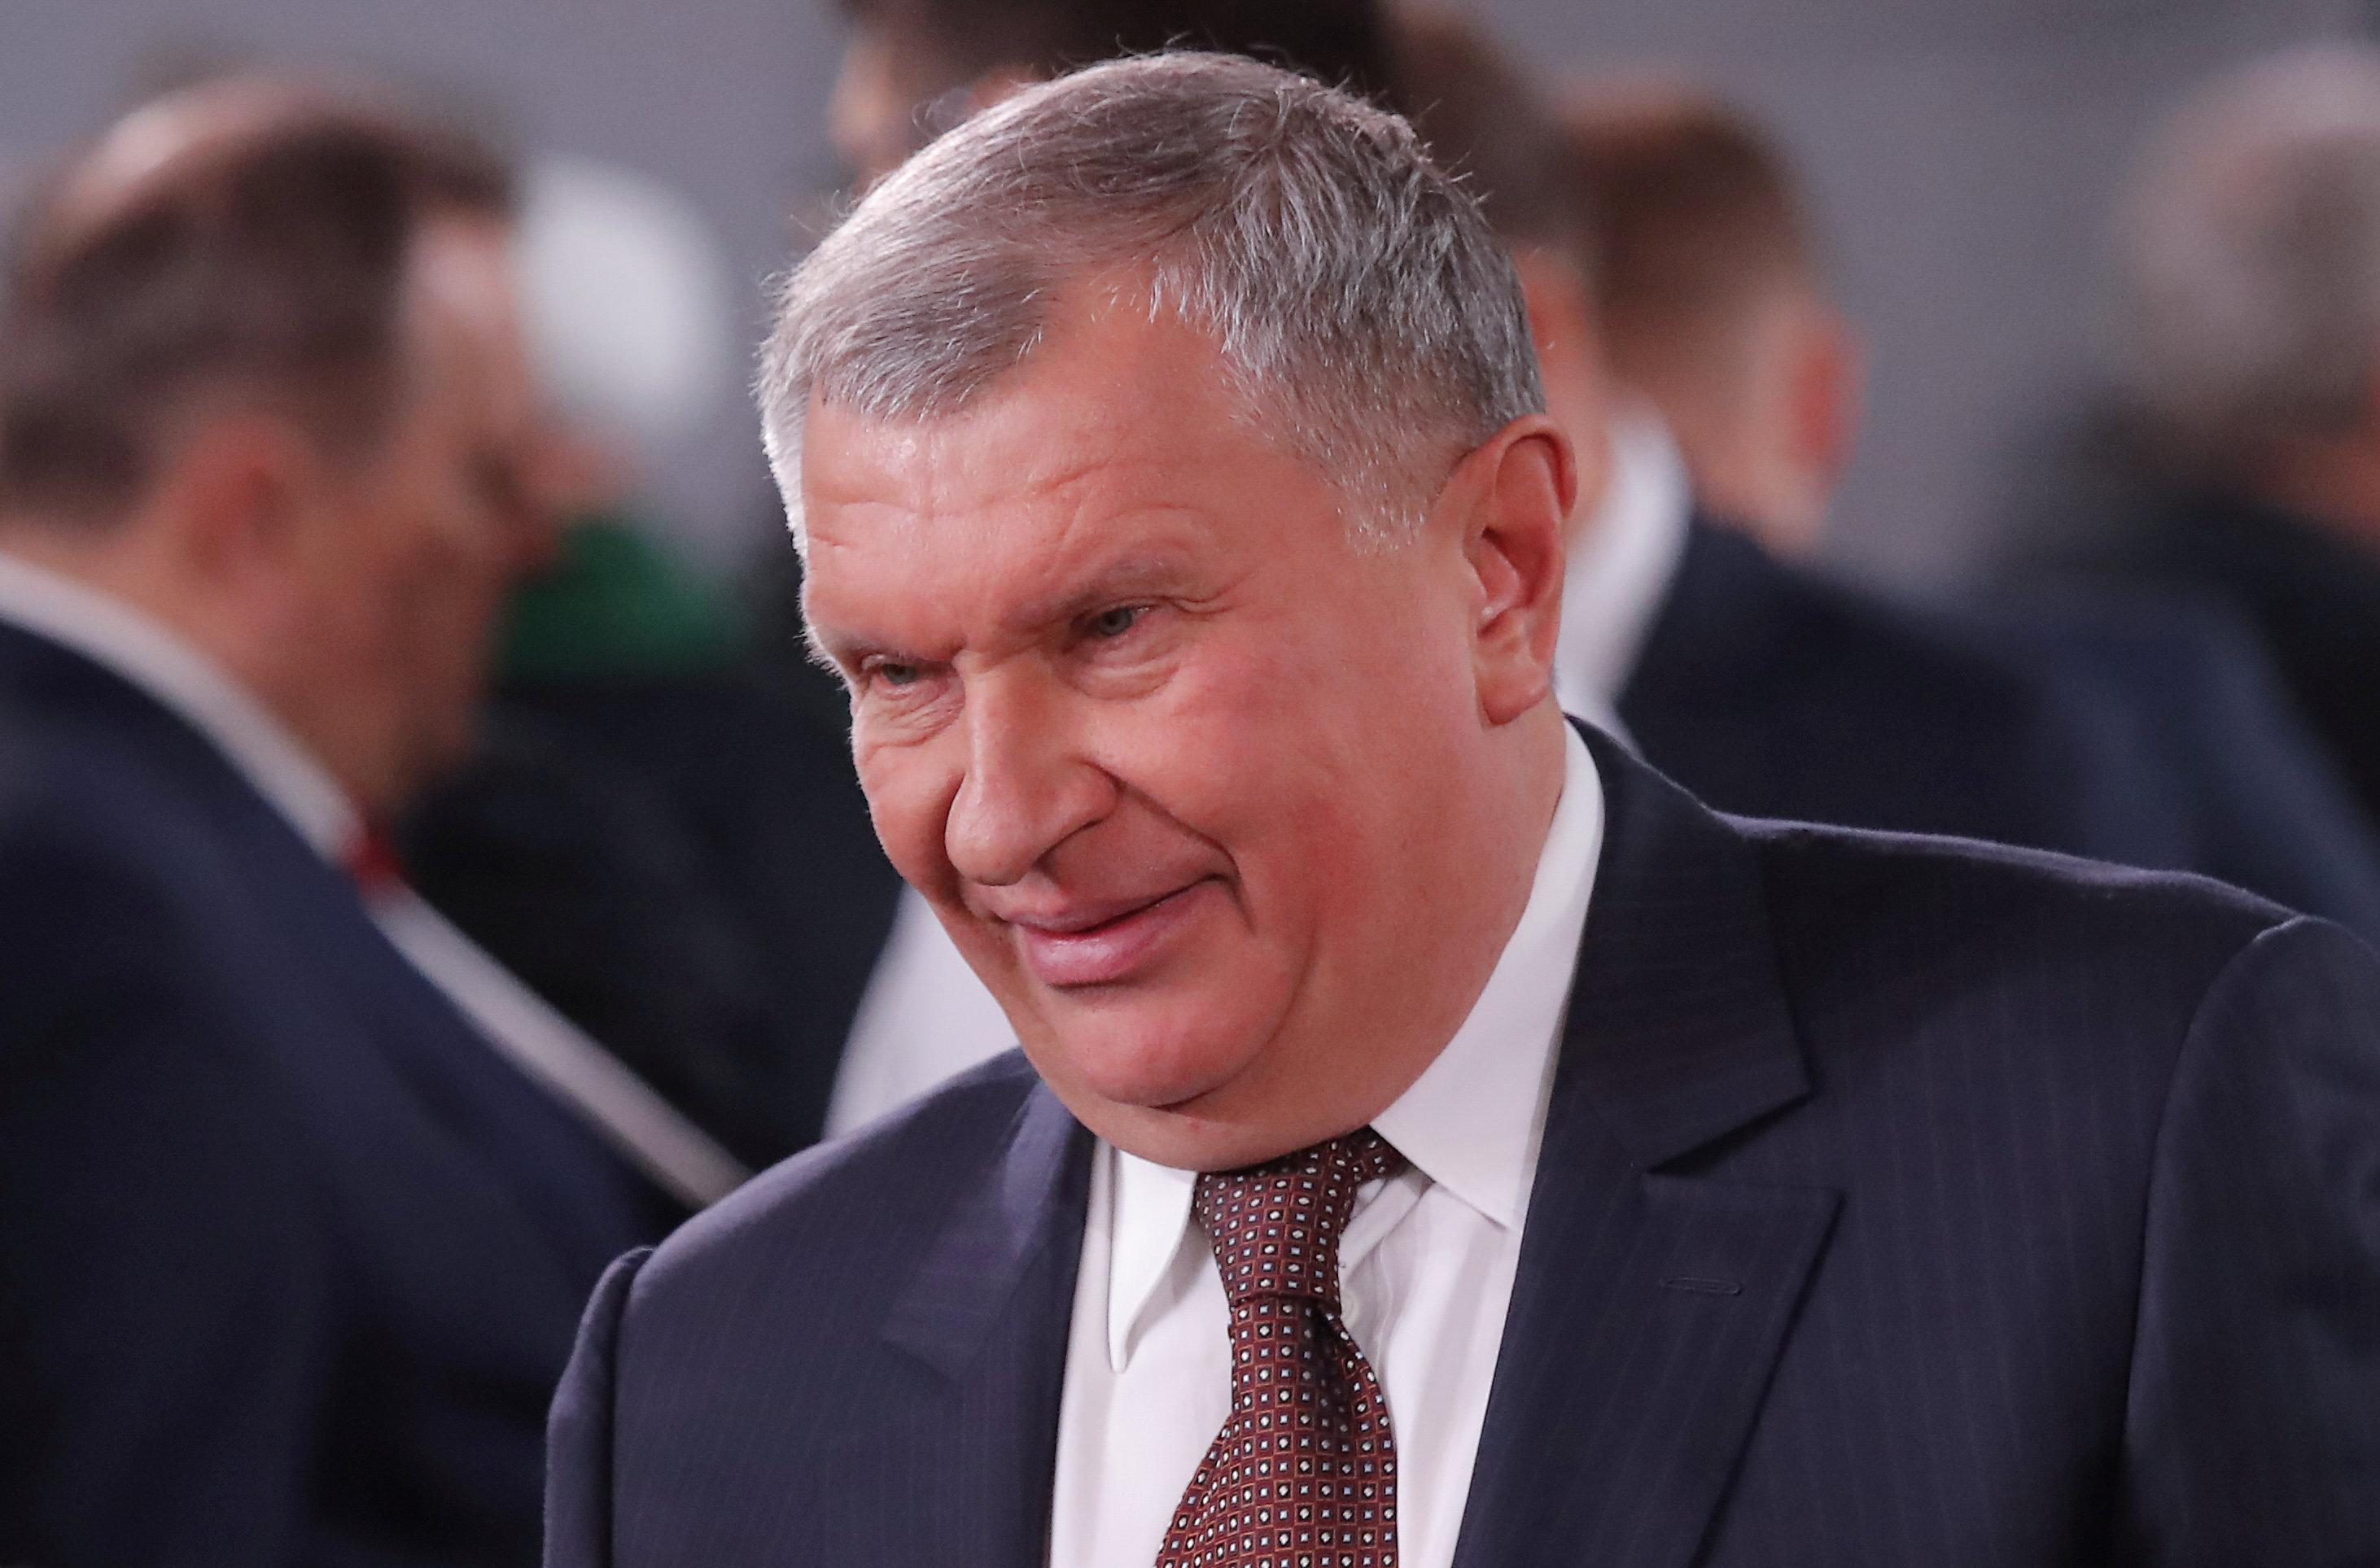 Rosneft Chief Executive Igor Sechin is seen before Russian President Vladimir Putin's annual state of the nation address to the Federal Assembly in Moscow, Russia March 1, 2018. Maxim Shemetov